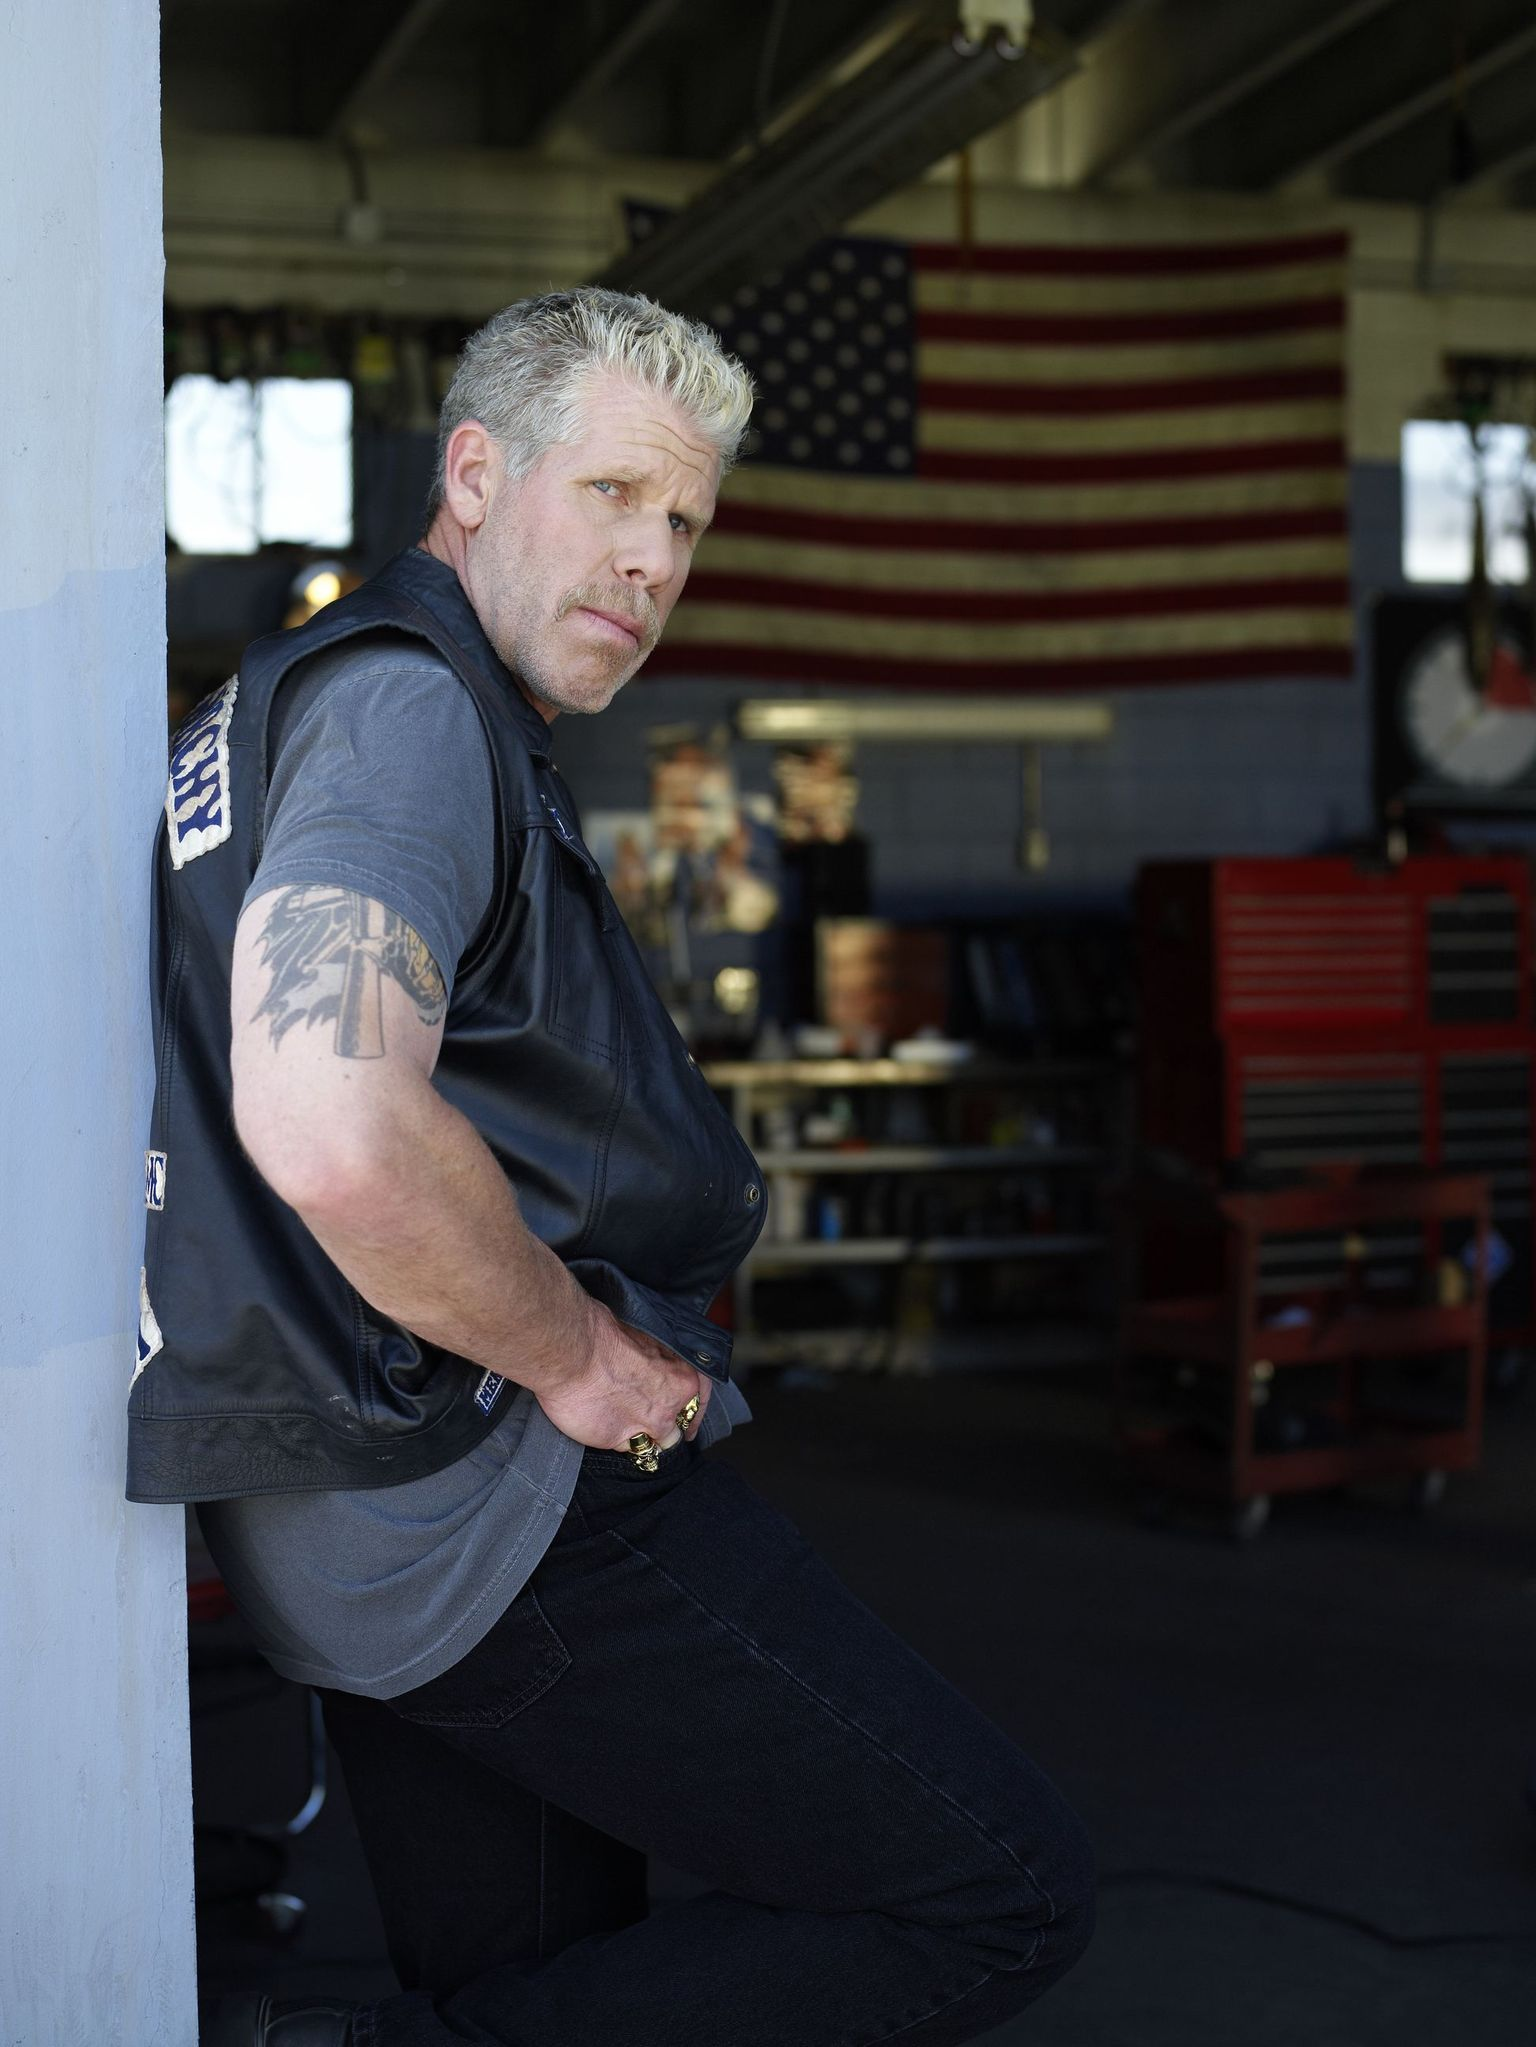 Sons Of Anarchy Photo Clay Morrow Sons Of Anarchy Ron Perlman Sons Of Anarchy Samcro